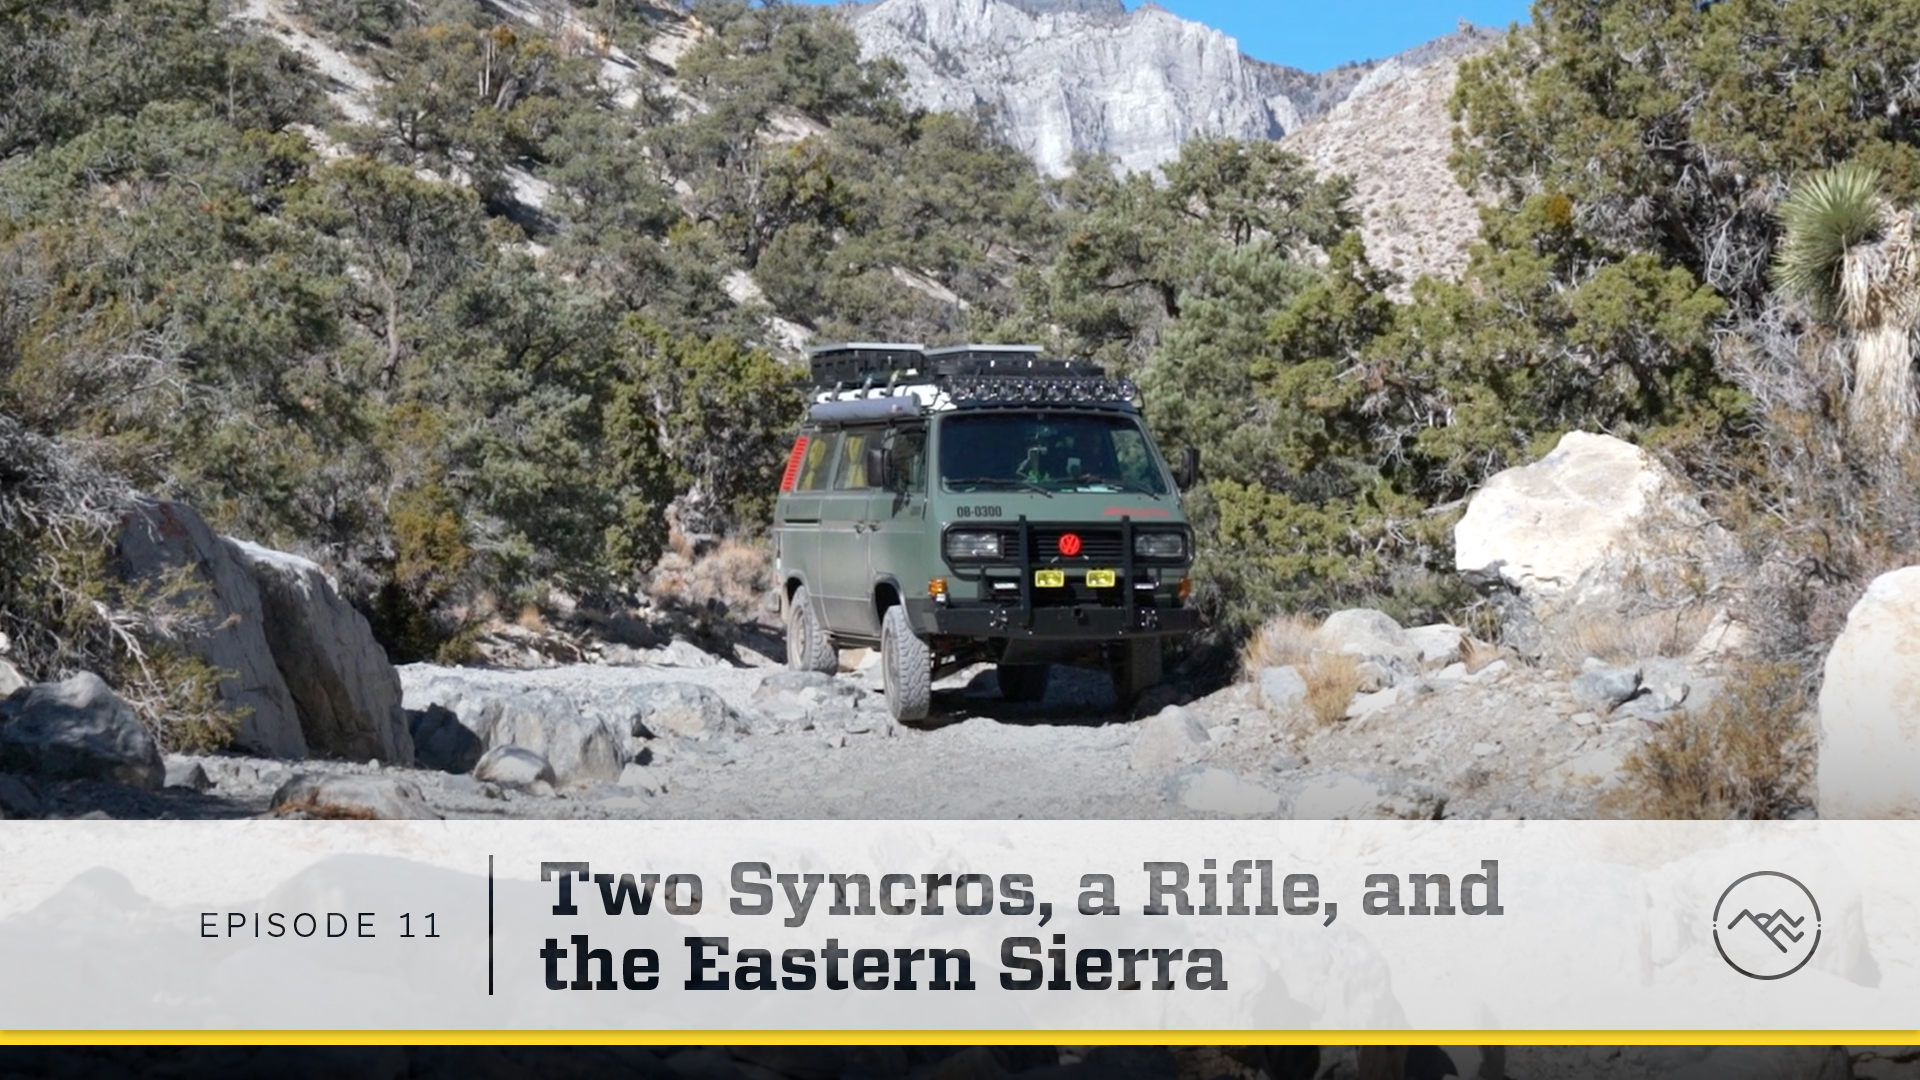 E011 : Two Syncros, a Rifle, And the Eastern Sierra